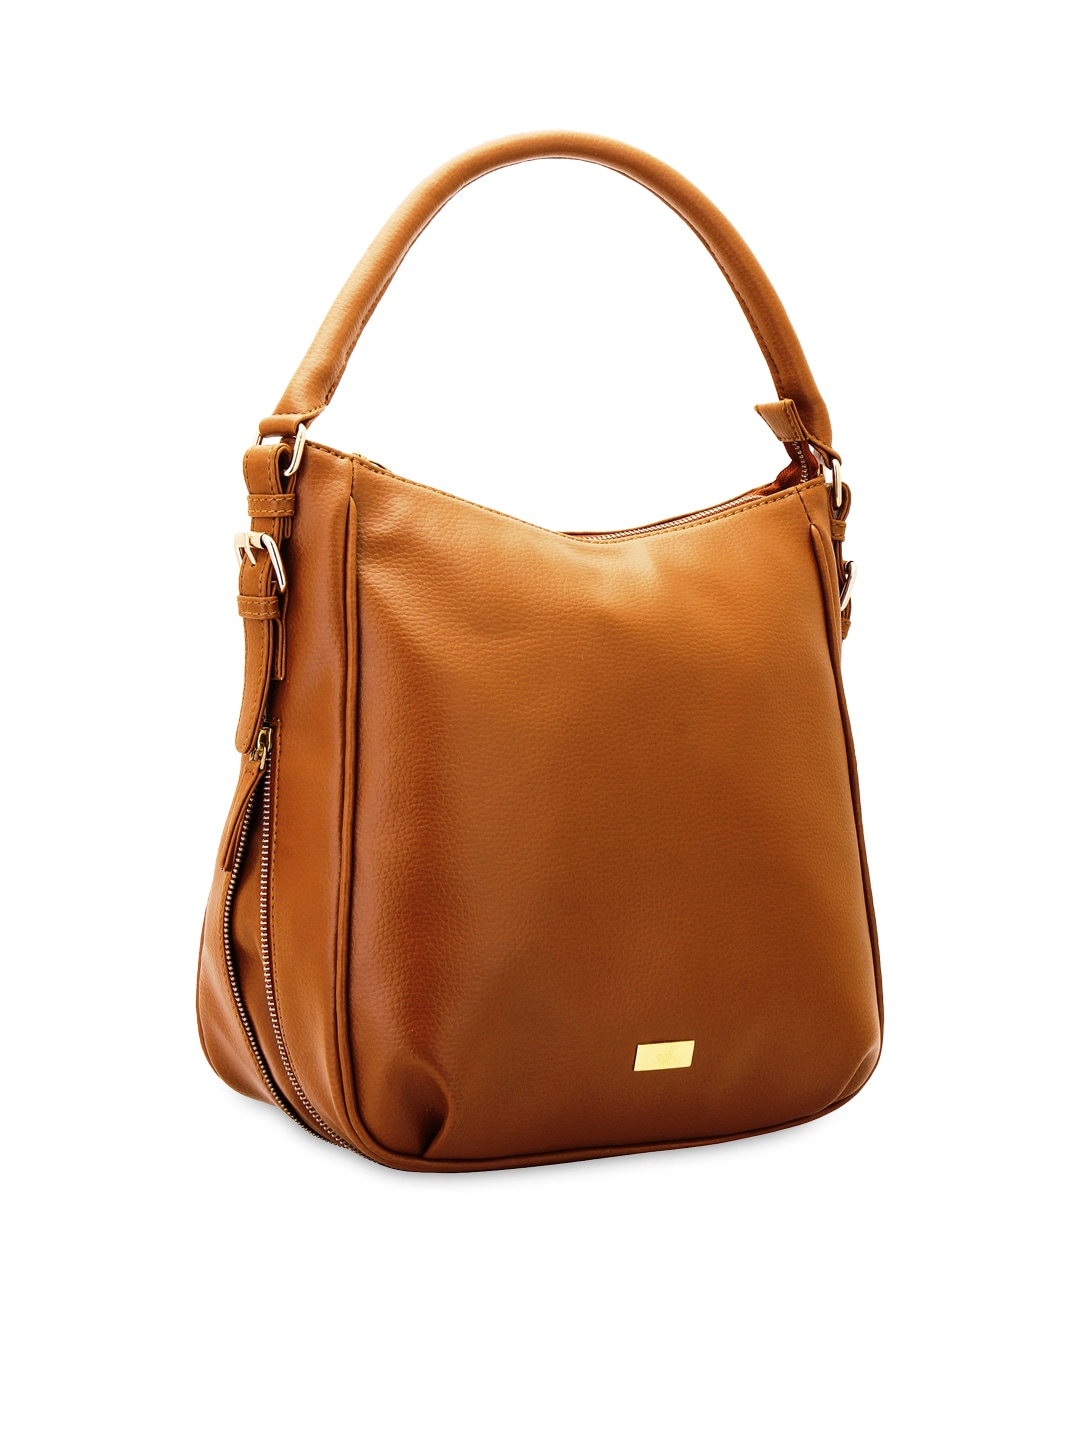 Hobo Bags Handbags - Buy Hobo Bags Handbags online in India